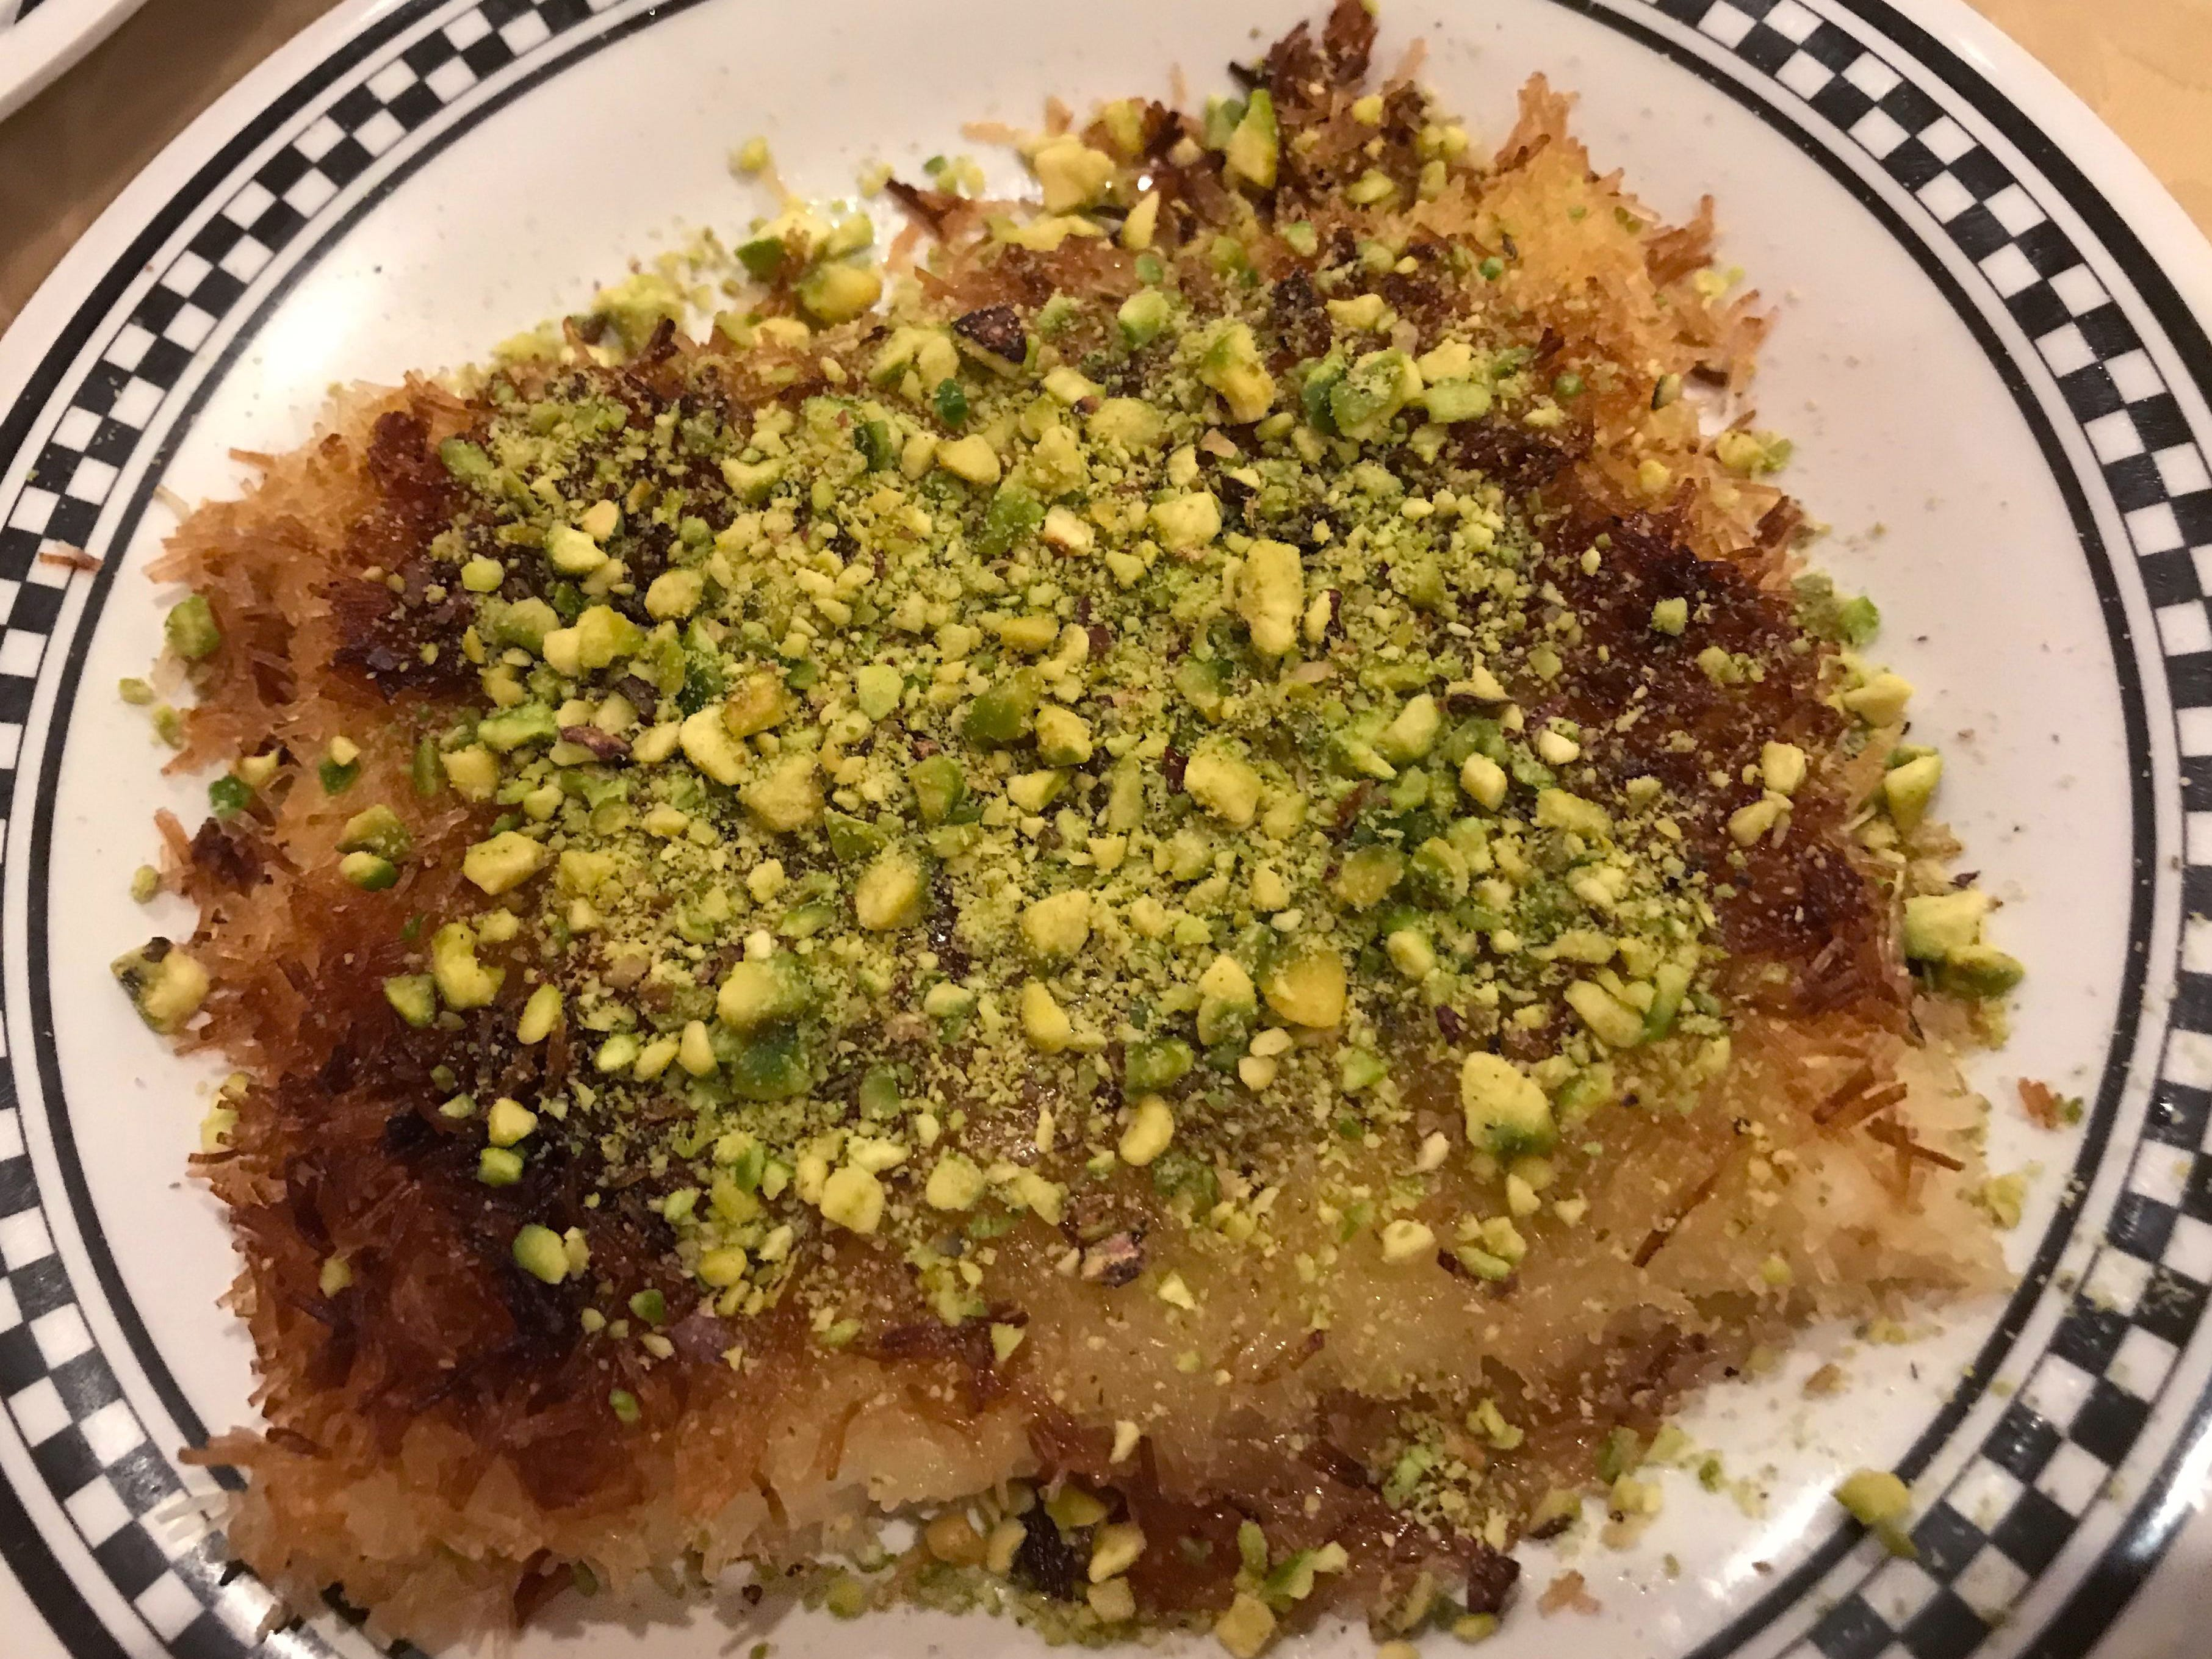 Kunafa, a dessert of cheese layered between shredded phyllo dough, covered in chopped pistachios and sweetened with sugar syrup, is one of the desserts at Damascus Gate.